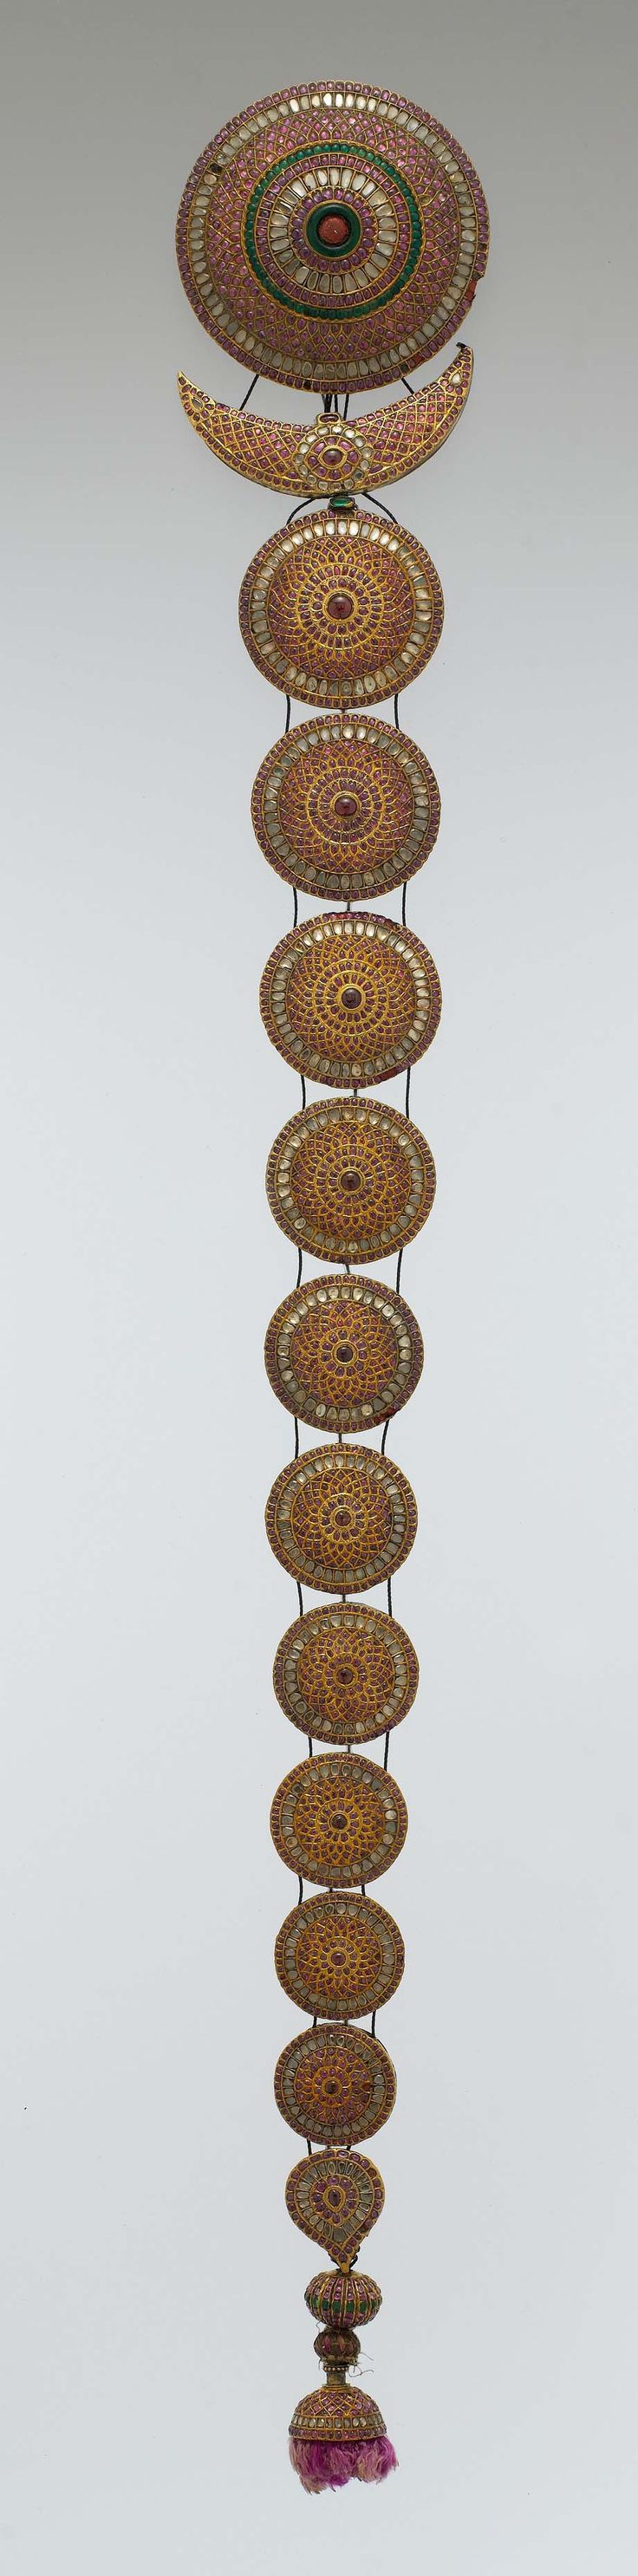 India | Braid/plait ornament {Jadanagam}; gold inset with rock crystal, rubies, emeralds and amethysts | 18th/19th century. Probably Madras